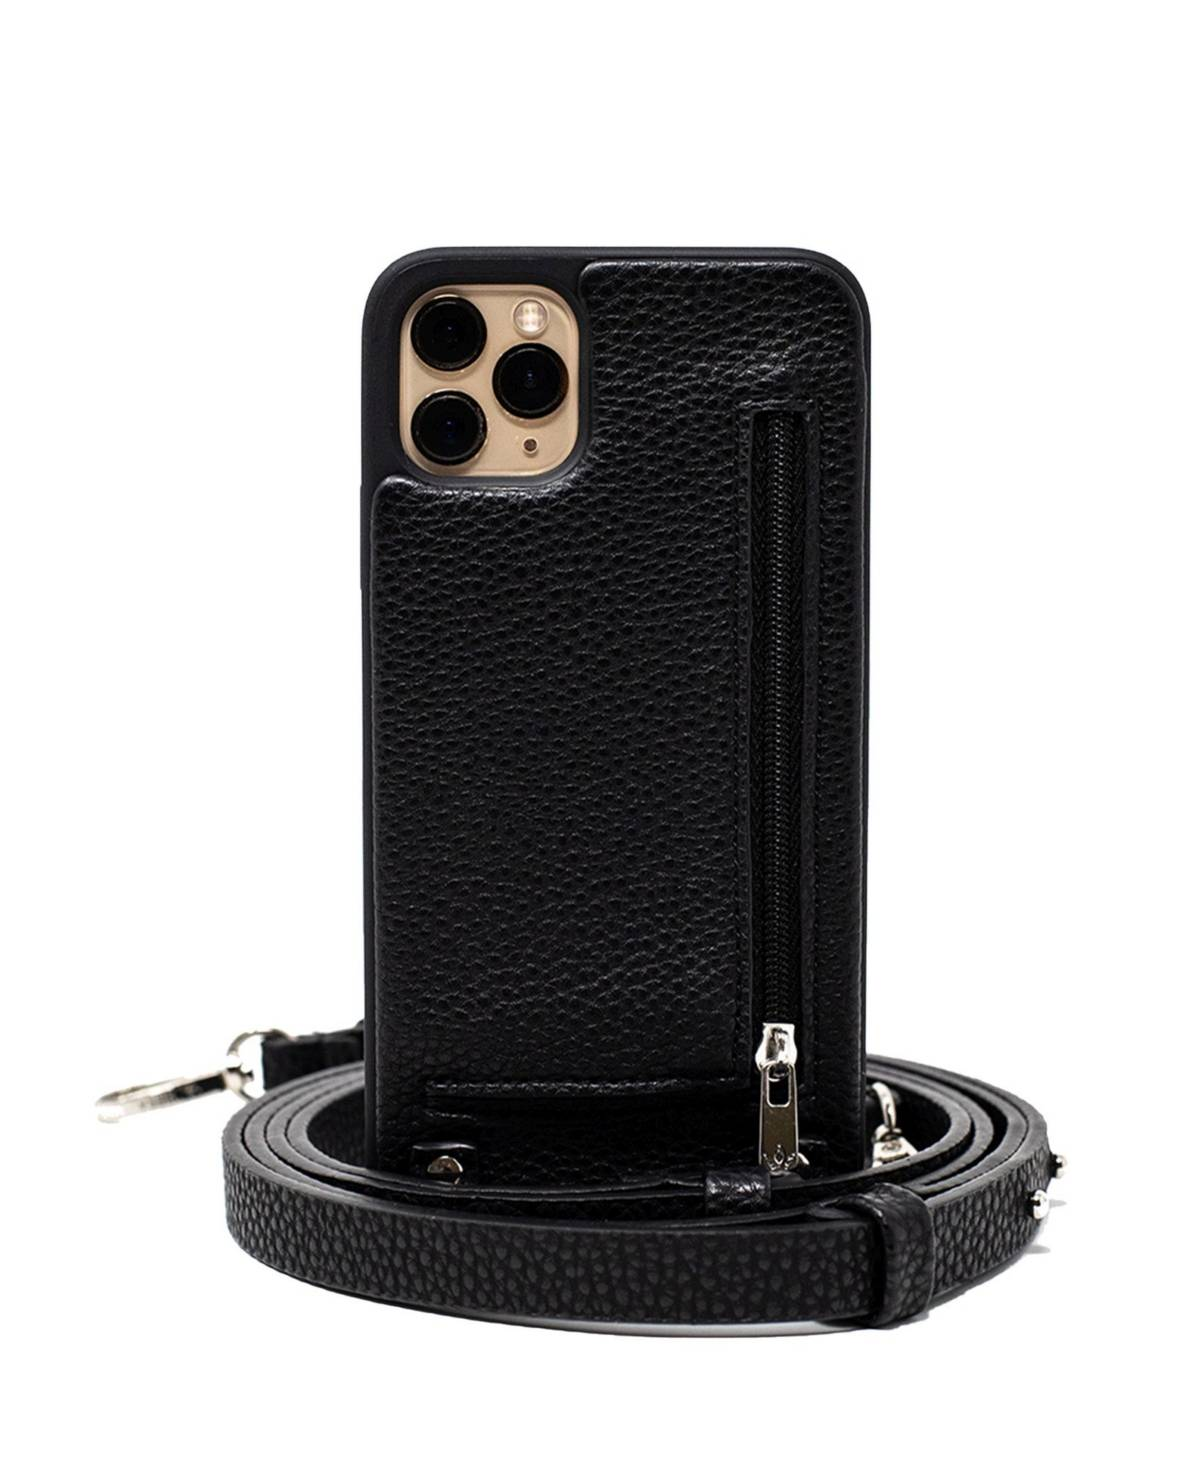 Hera Cases Iphone 11 Pro Case with Strap Wallet